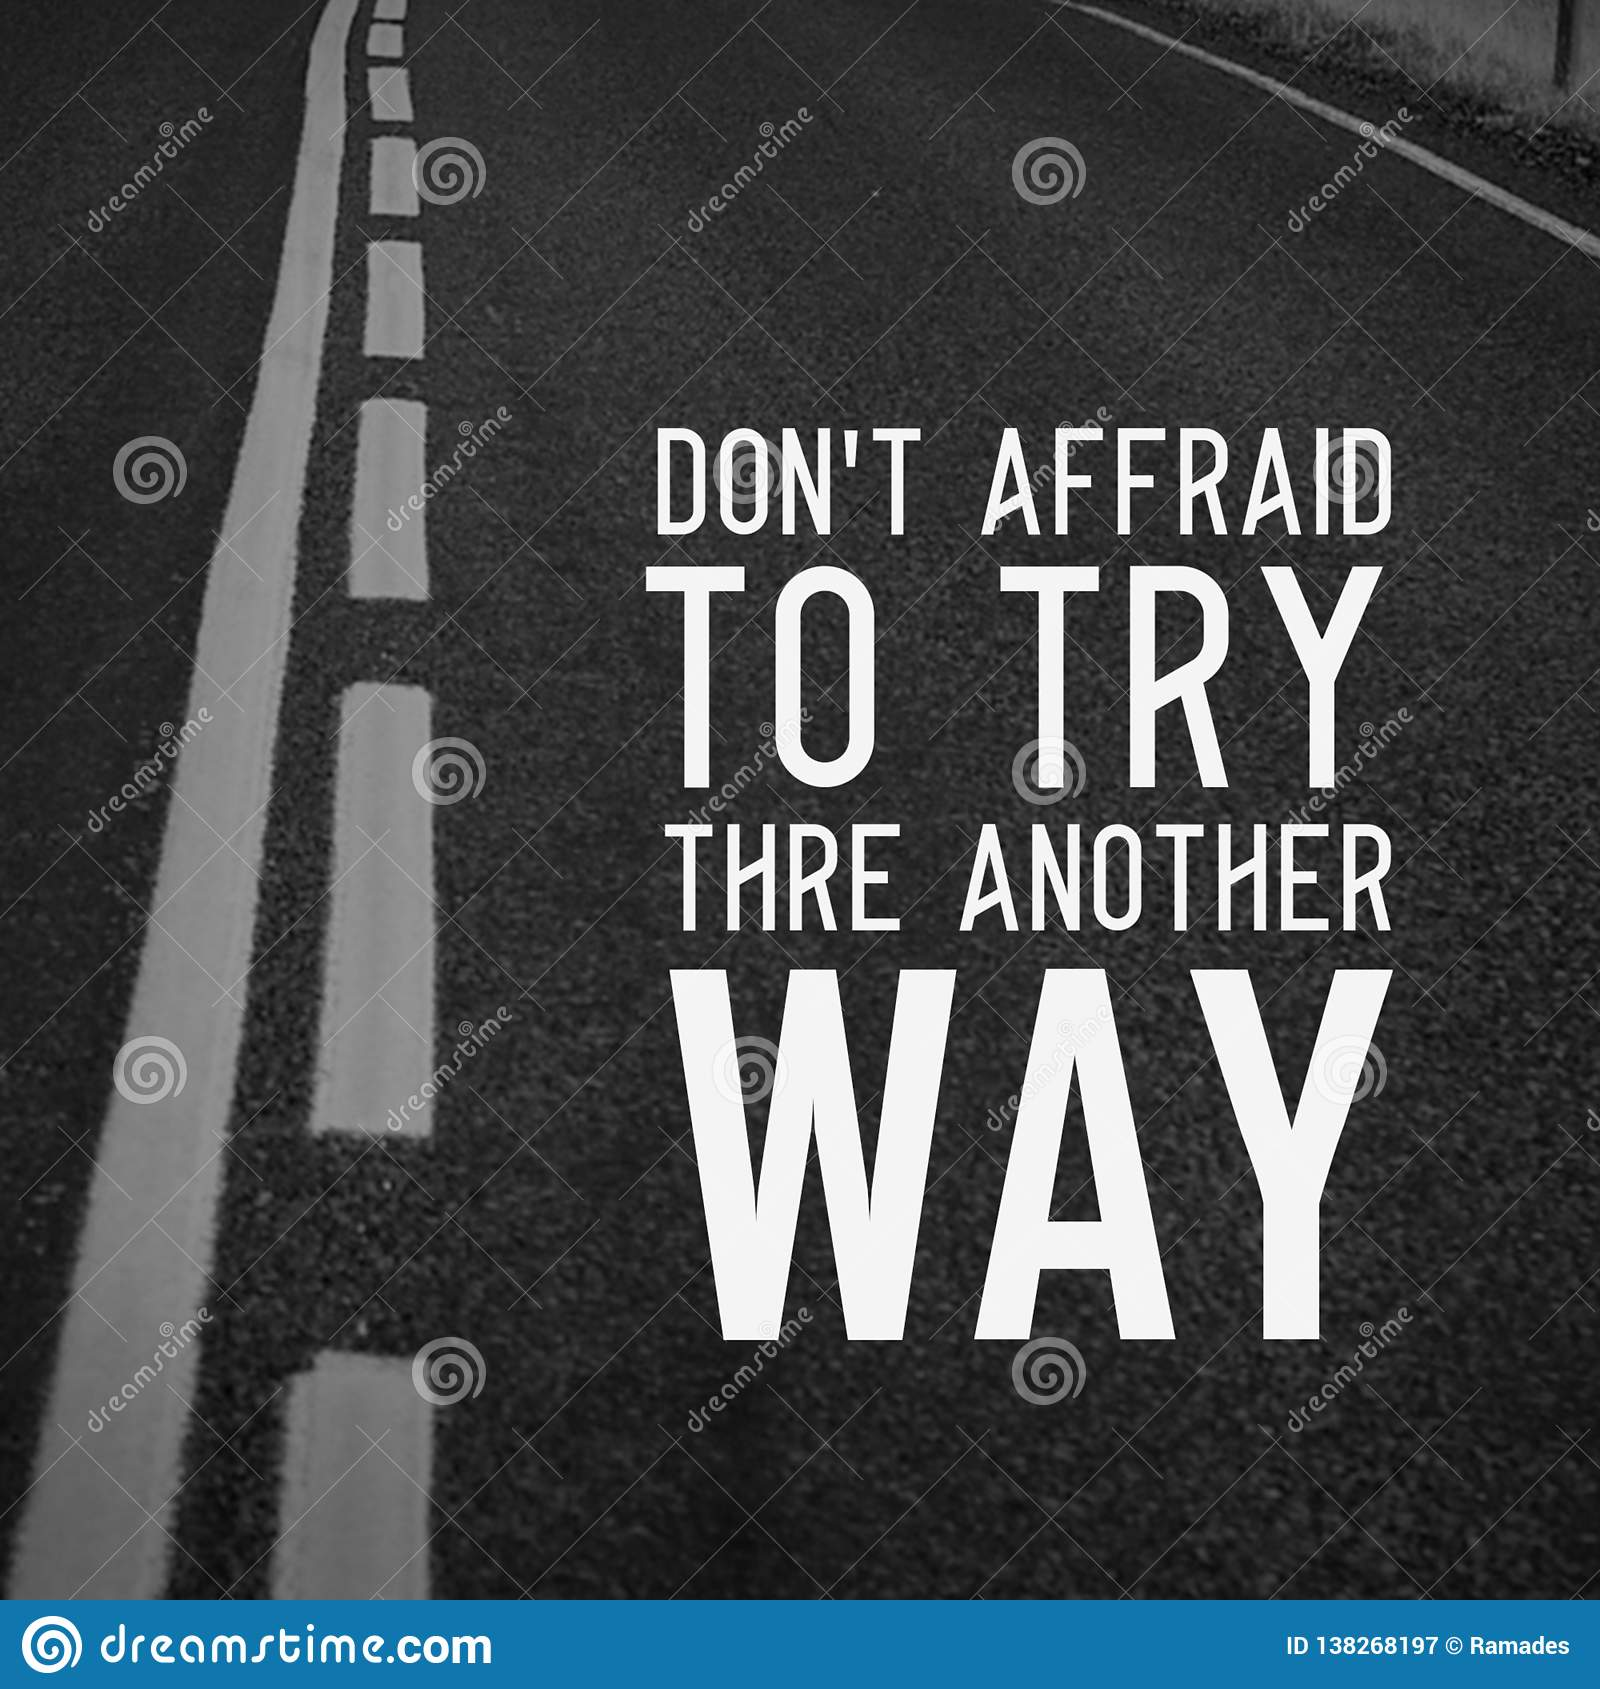 Quotes motivational and inspiring poster road